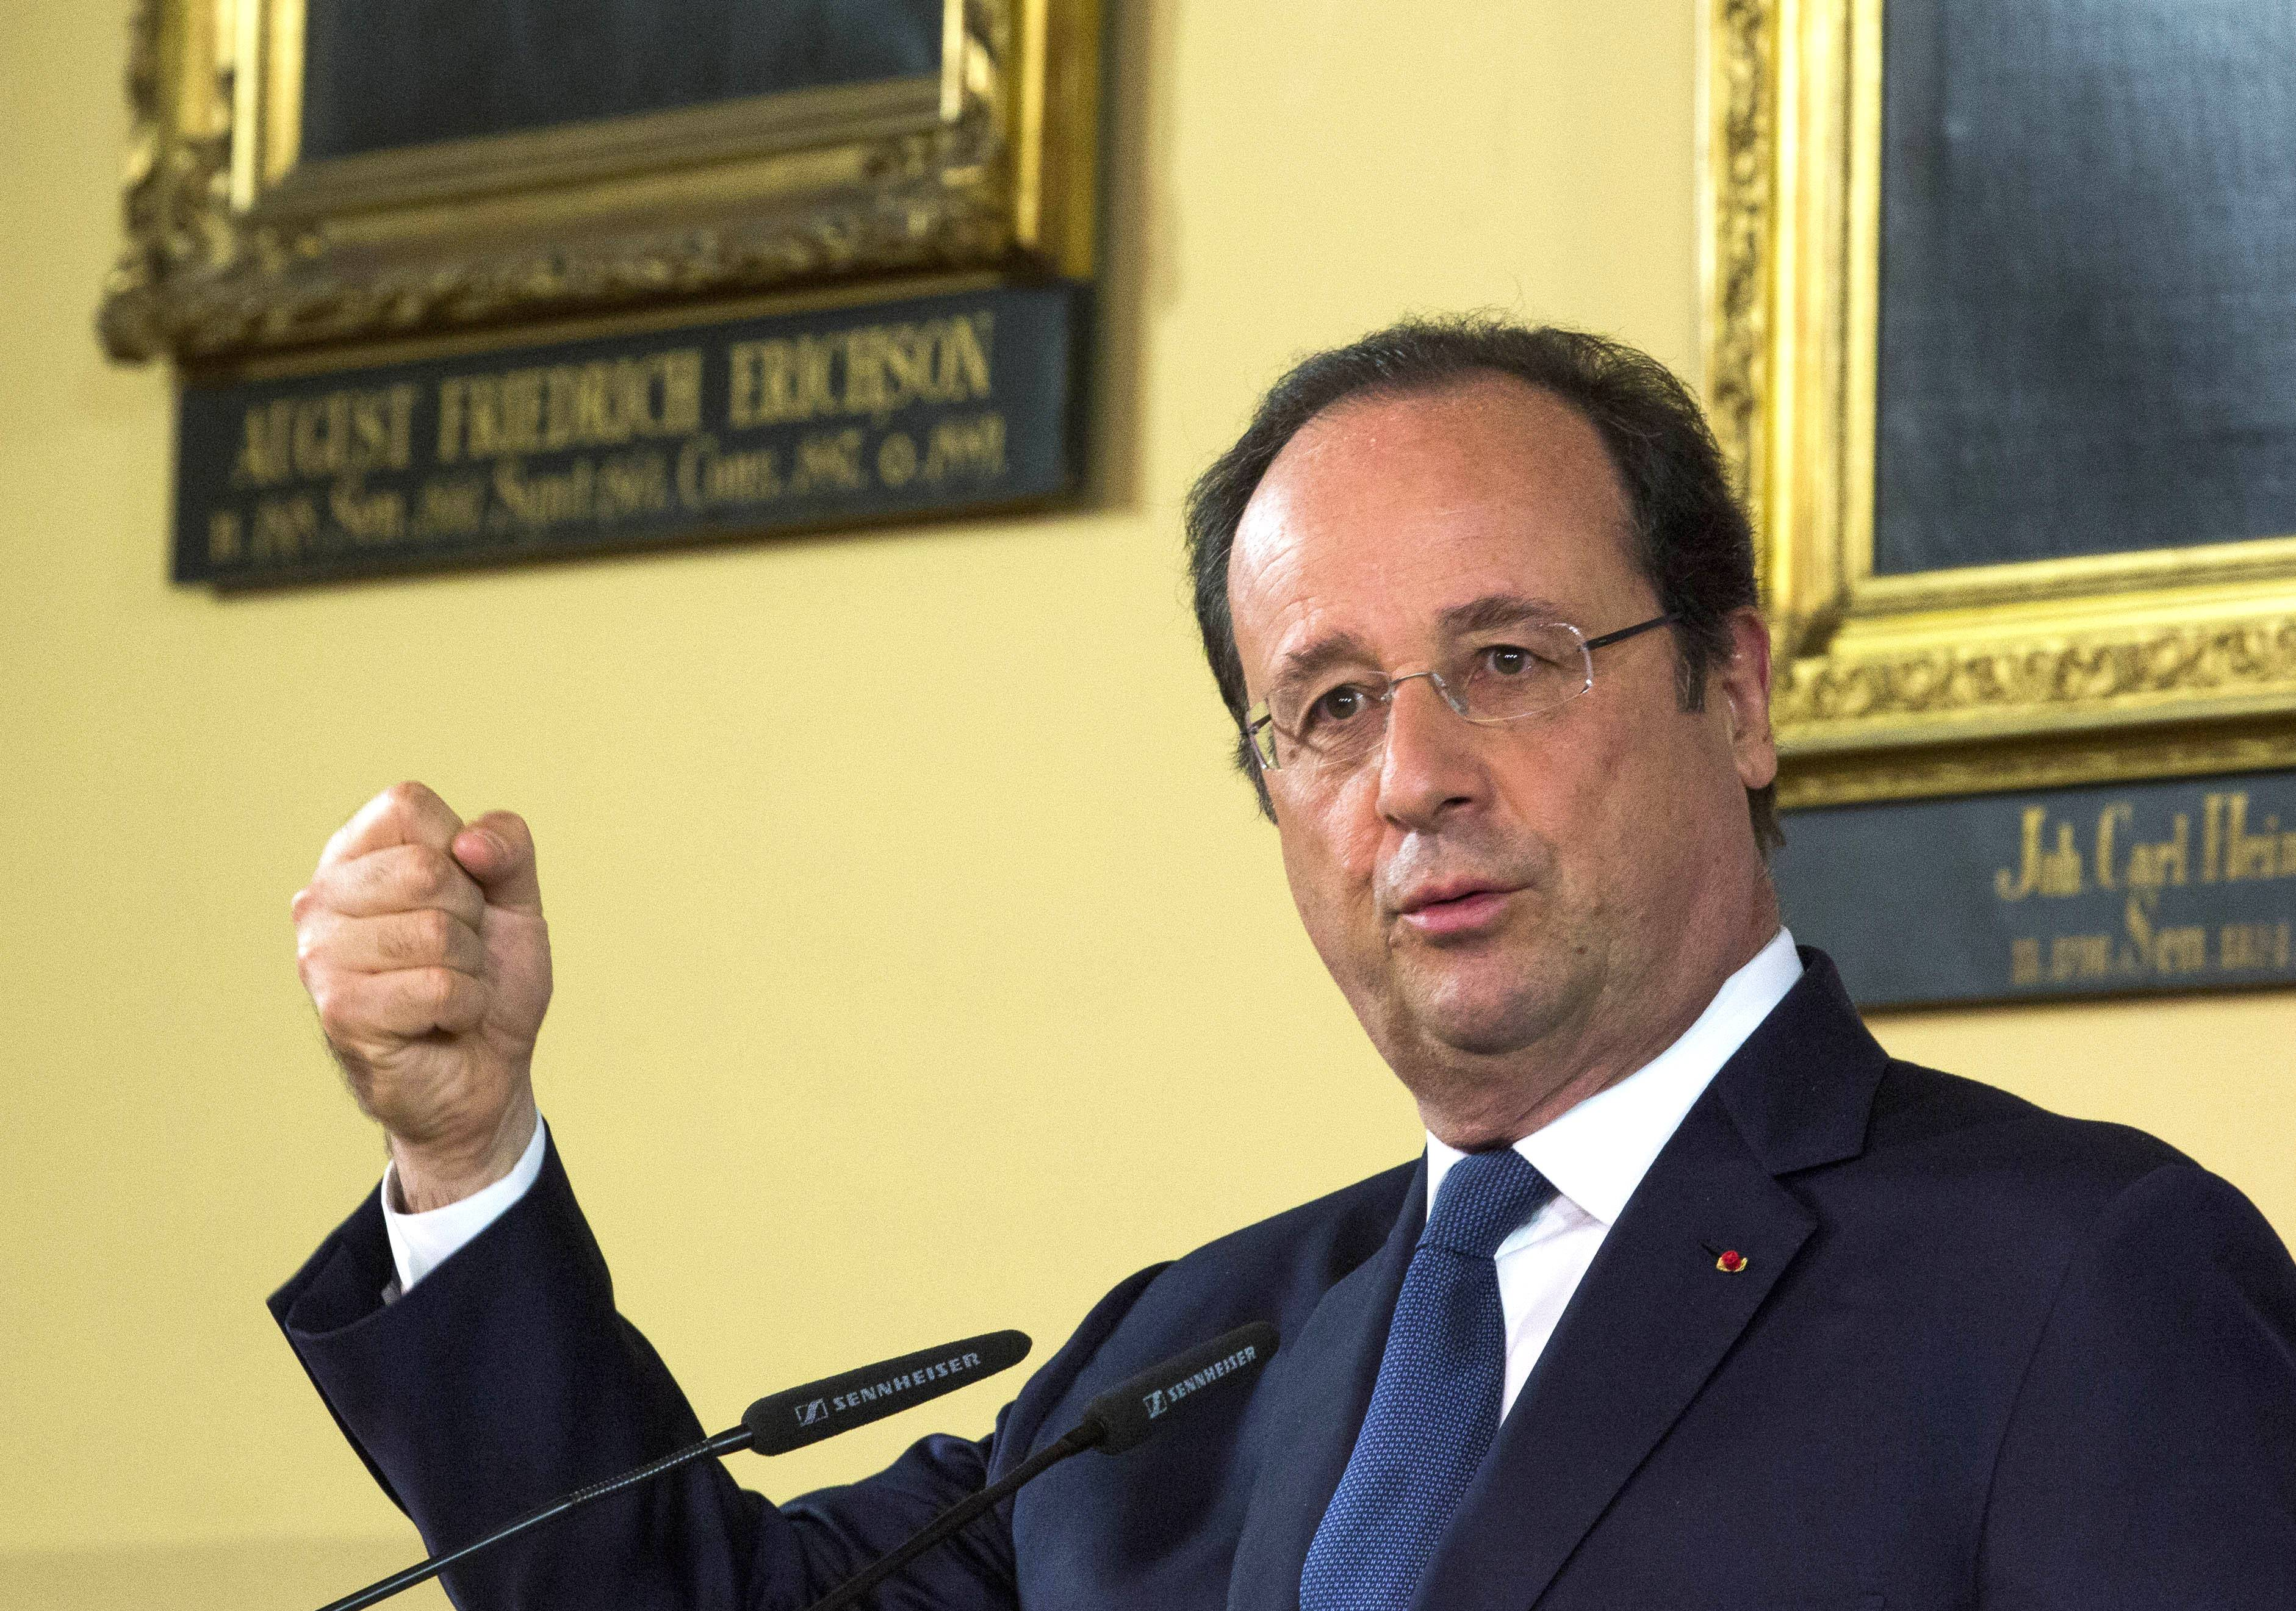 French President Francois Hollande gestures during a news conference with German Chancellor Merkel at the town hall in Stralsund, northern Germany, Saturday, May 10, 2014 during the second day of Hollande's two days visit to Merkel's scenic home constituency on the Baltic coast . One of the main talking points is expected to be over whether the European Union should impose further sanctions on Russia, for its involvement in the Ukraine crisis.